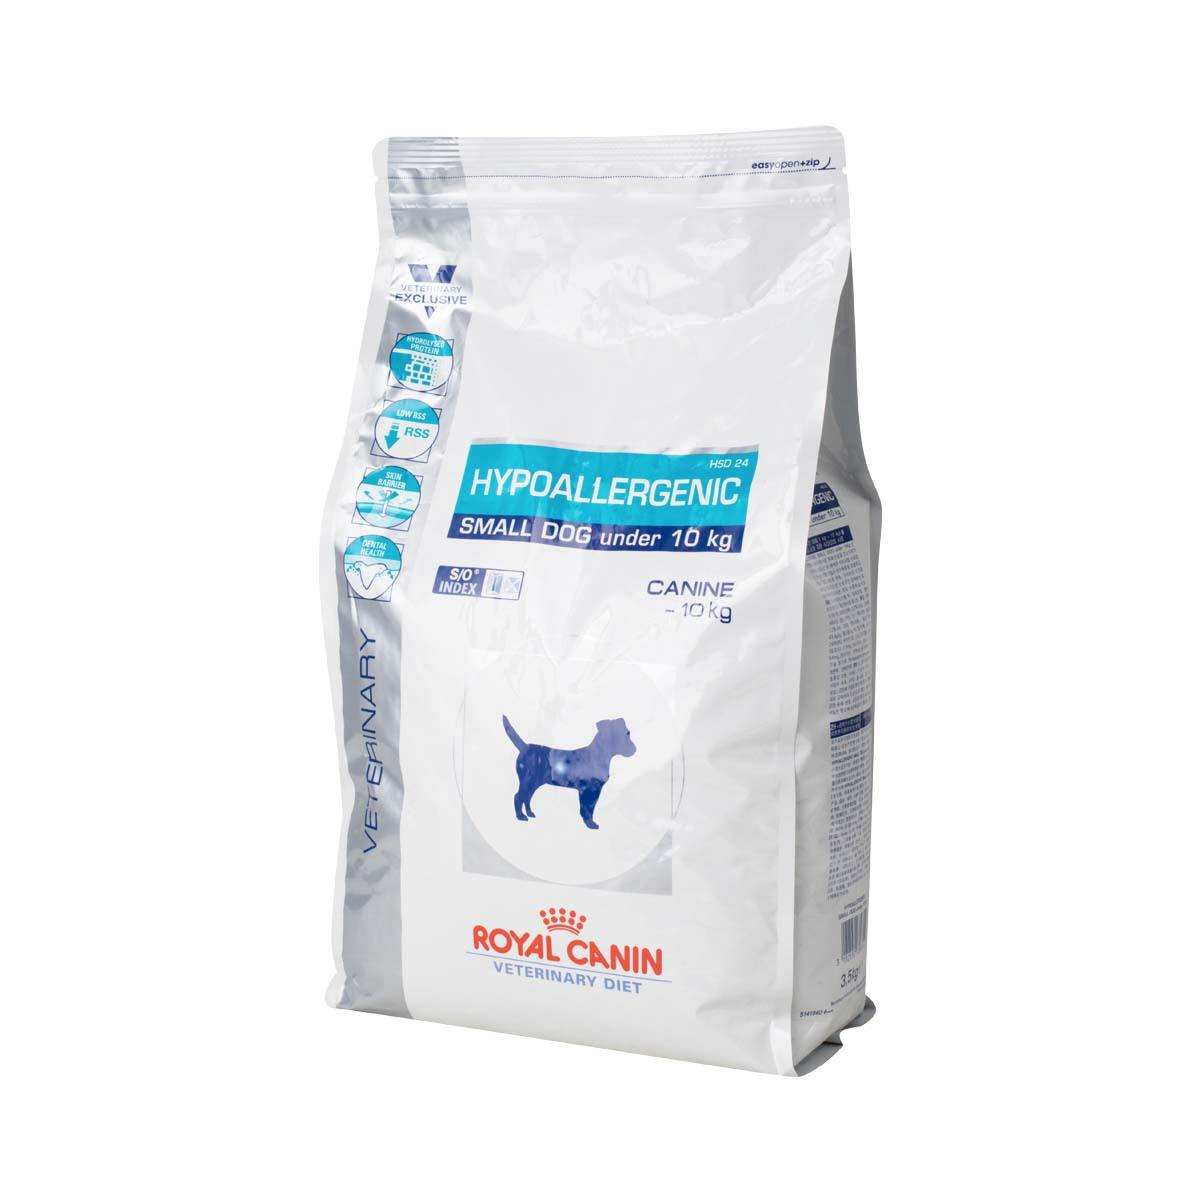 royal canin vet diet dog food hypoallergenic small dog